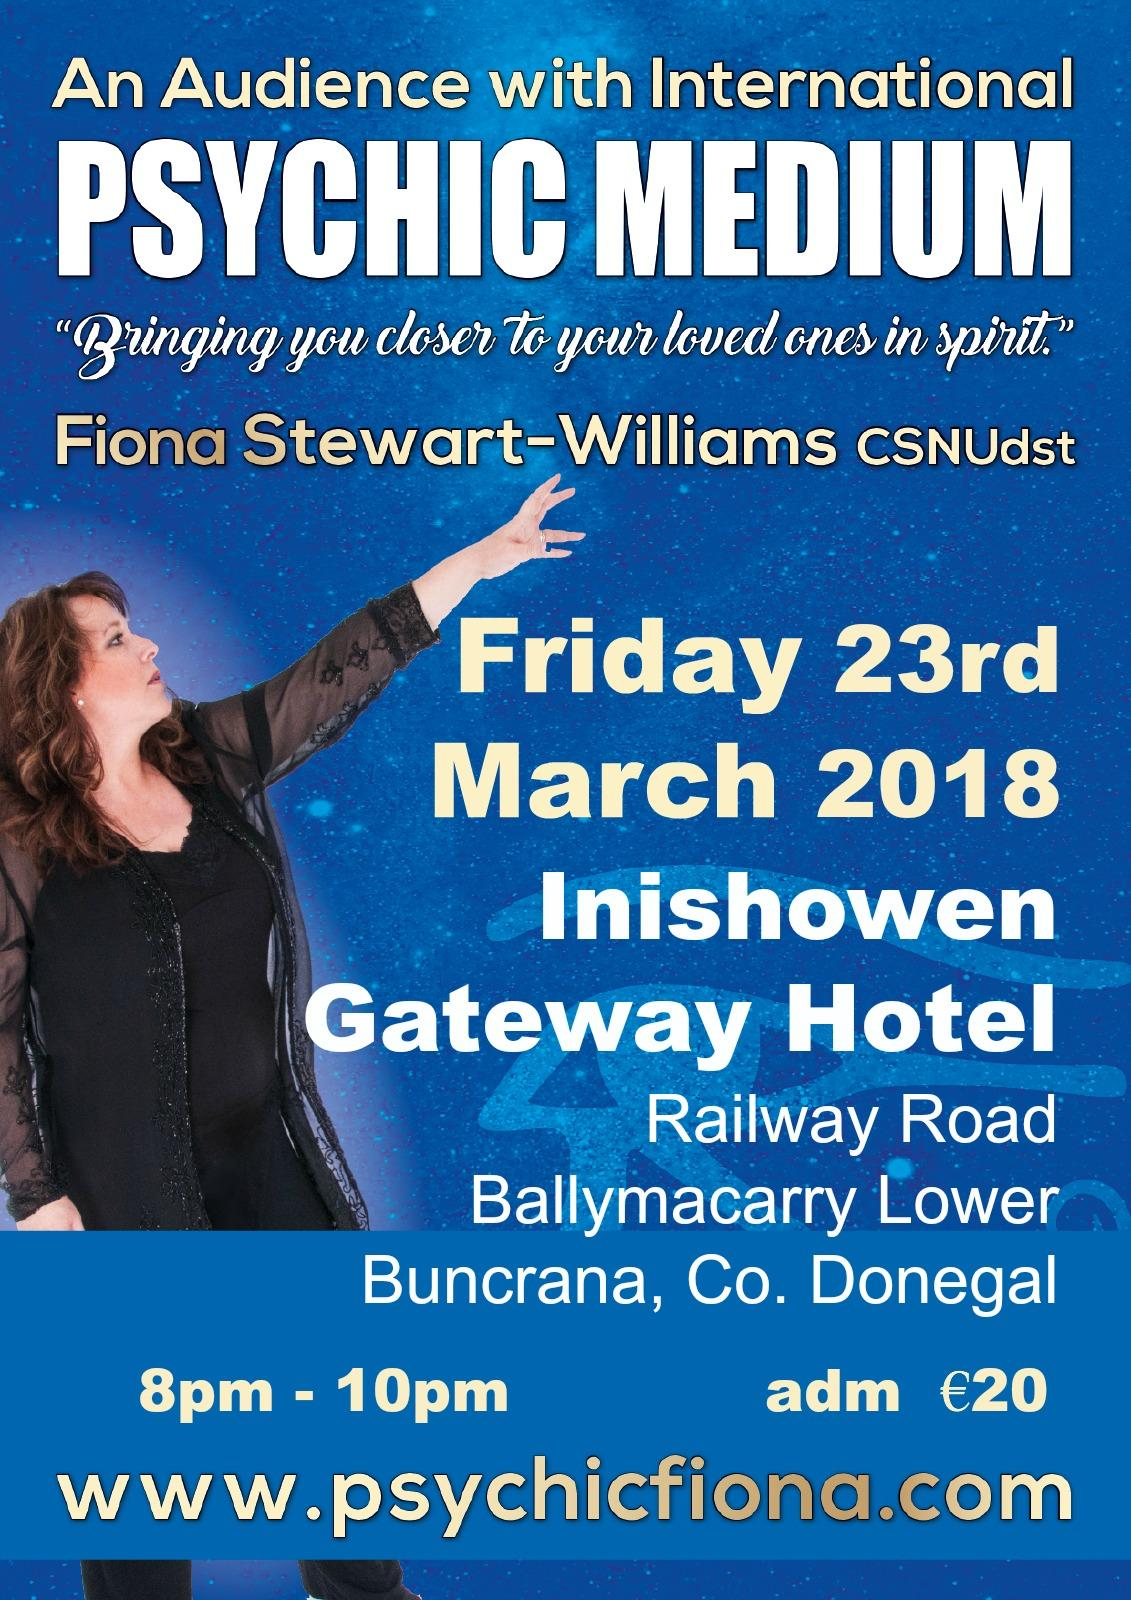 Psychic Night in Donegal